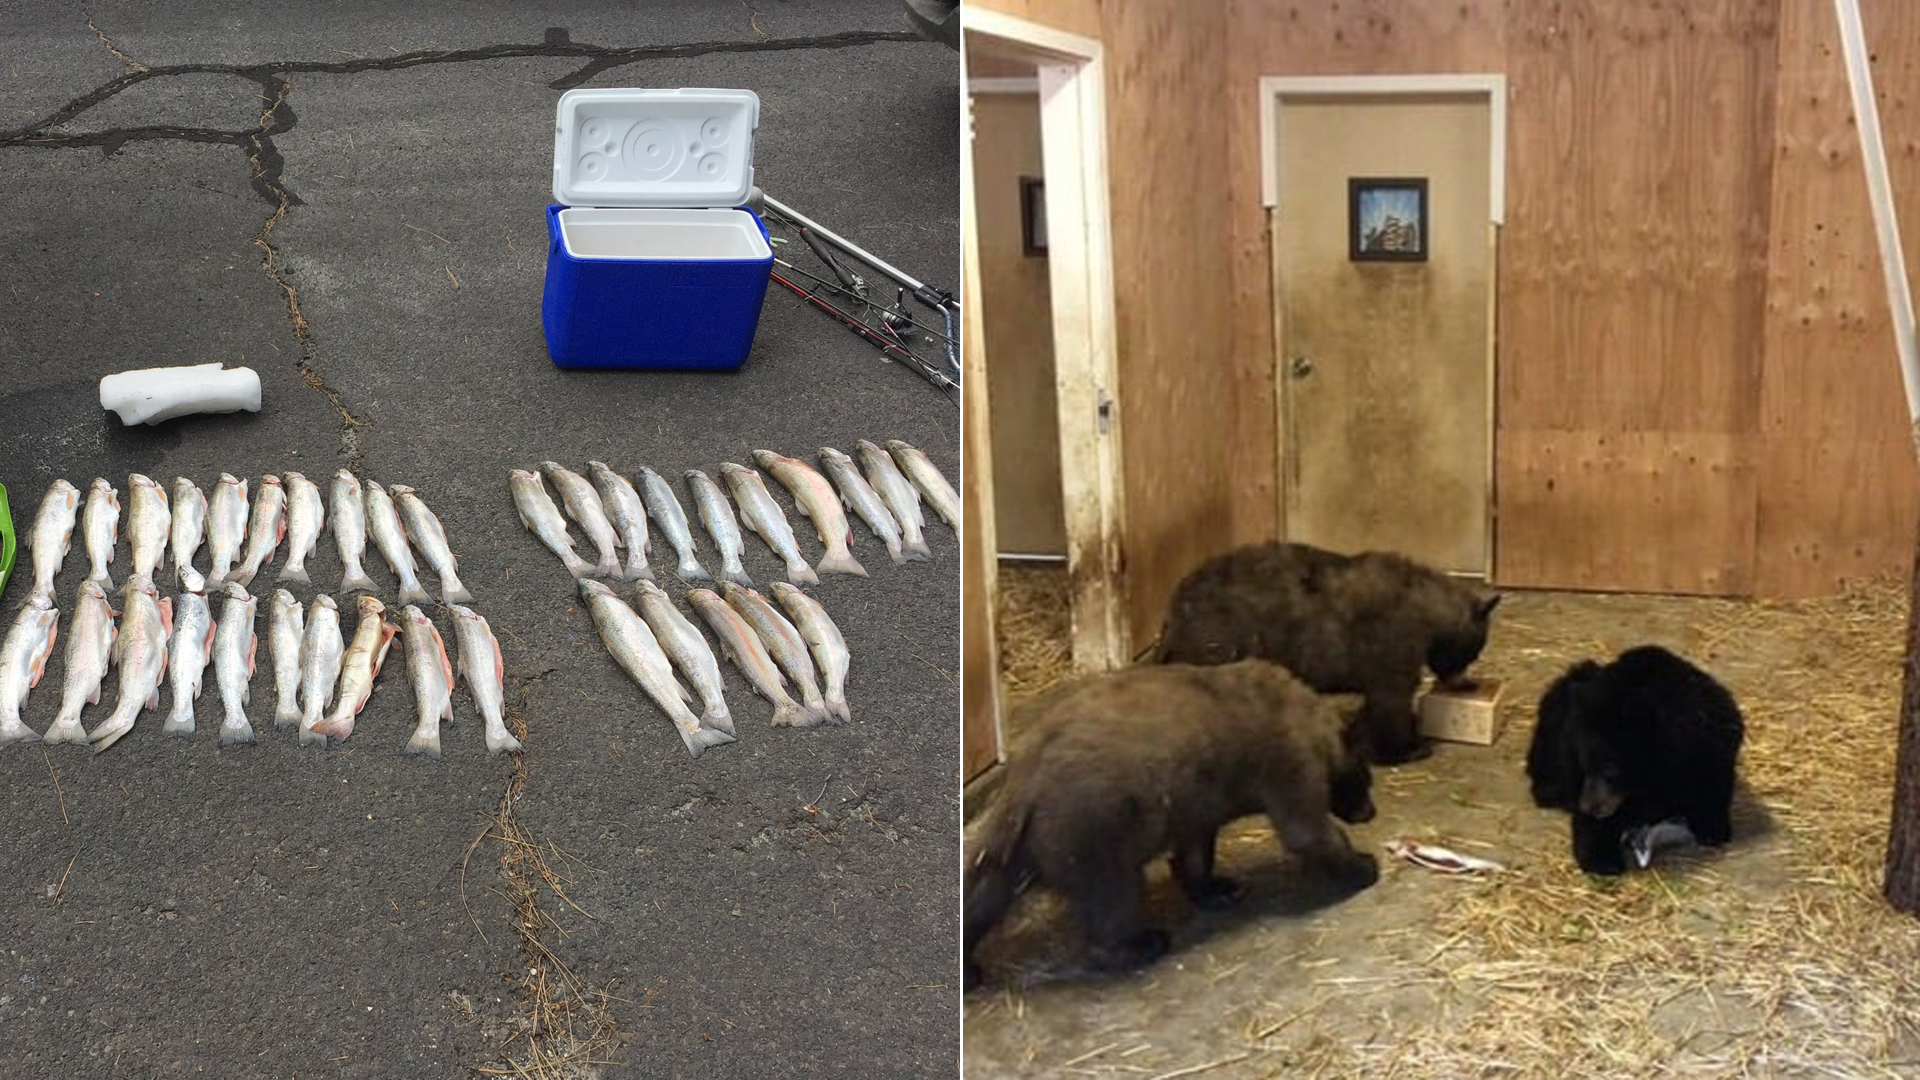 Trout and bears are seen in these photos released by the California Department of Fish and Wildlife on Dec. 11, 2019.